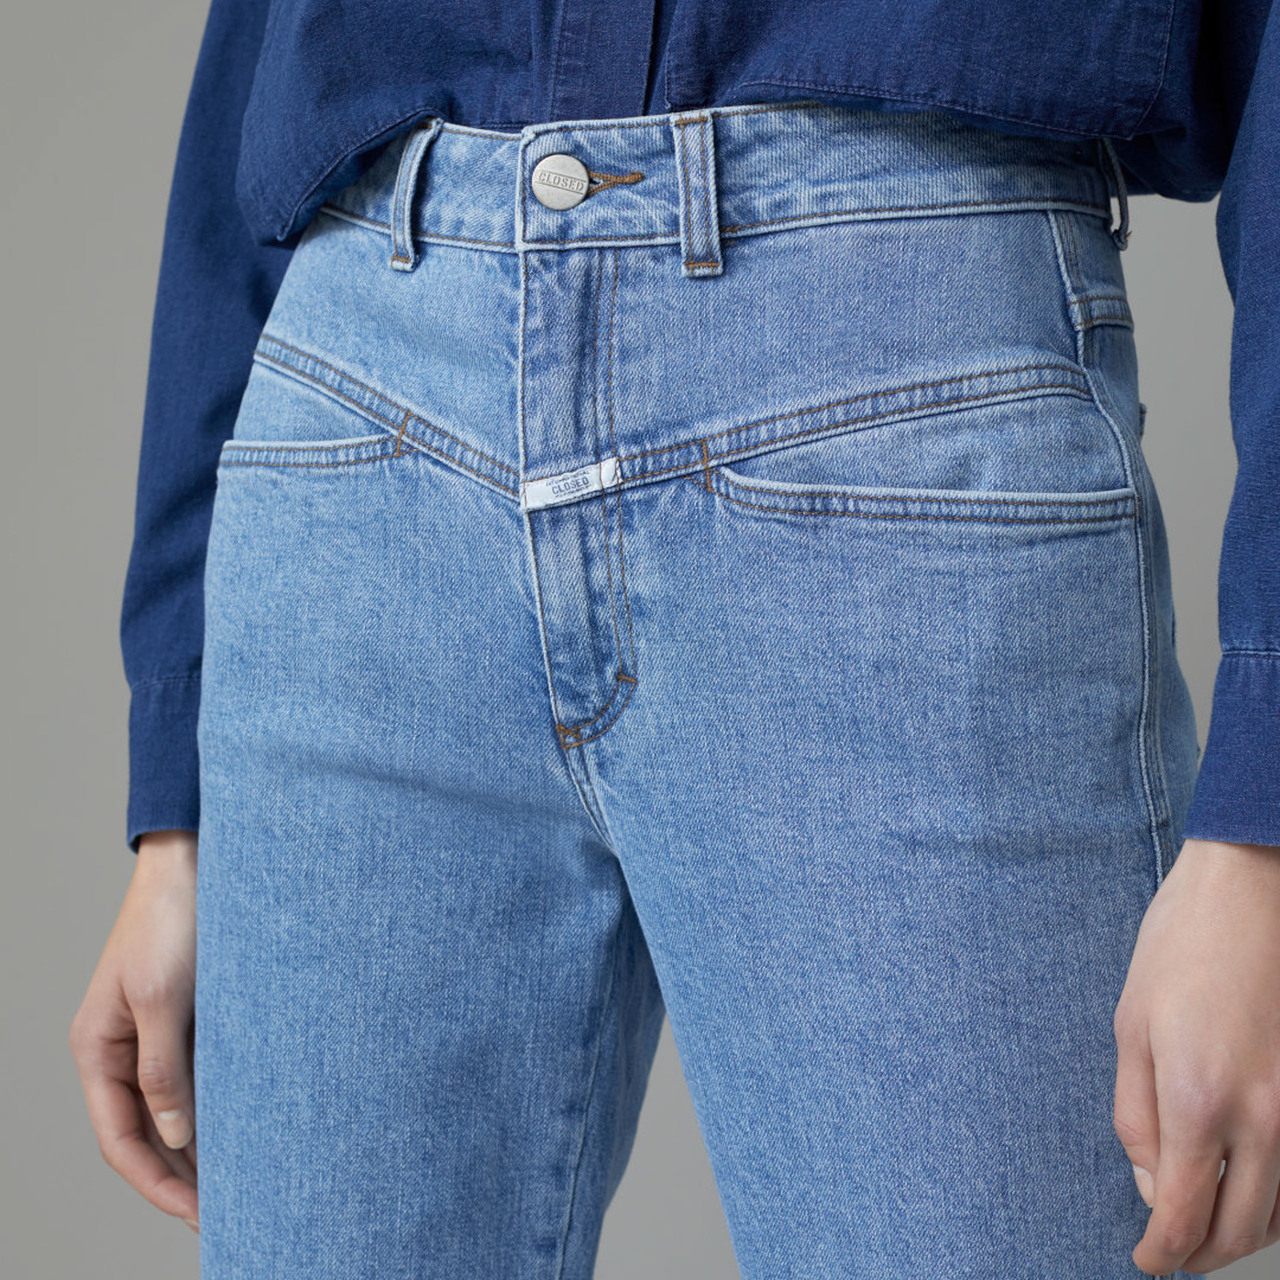 Closed Jeans 'Pedal Pusher' von 'Closed' IT 38